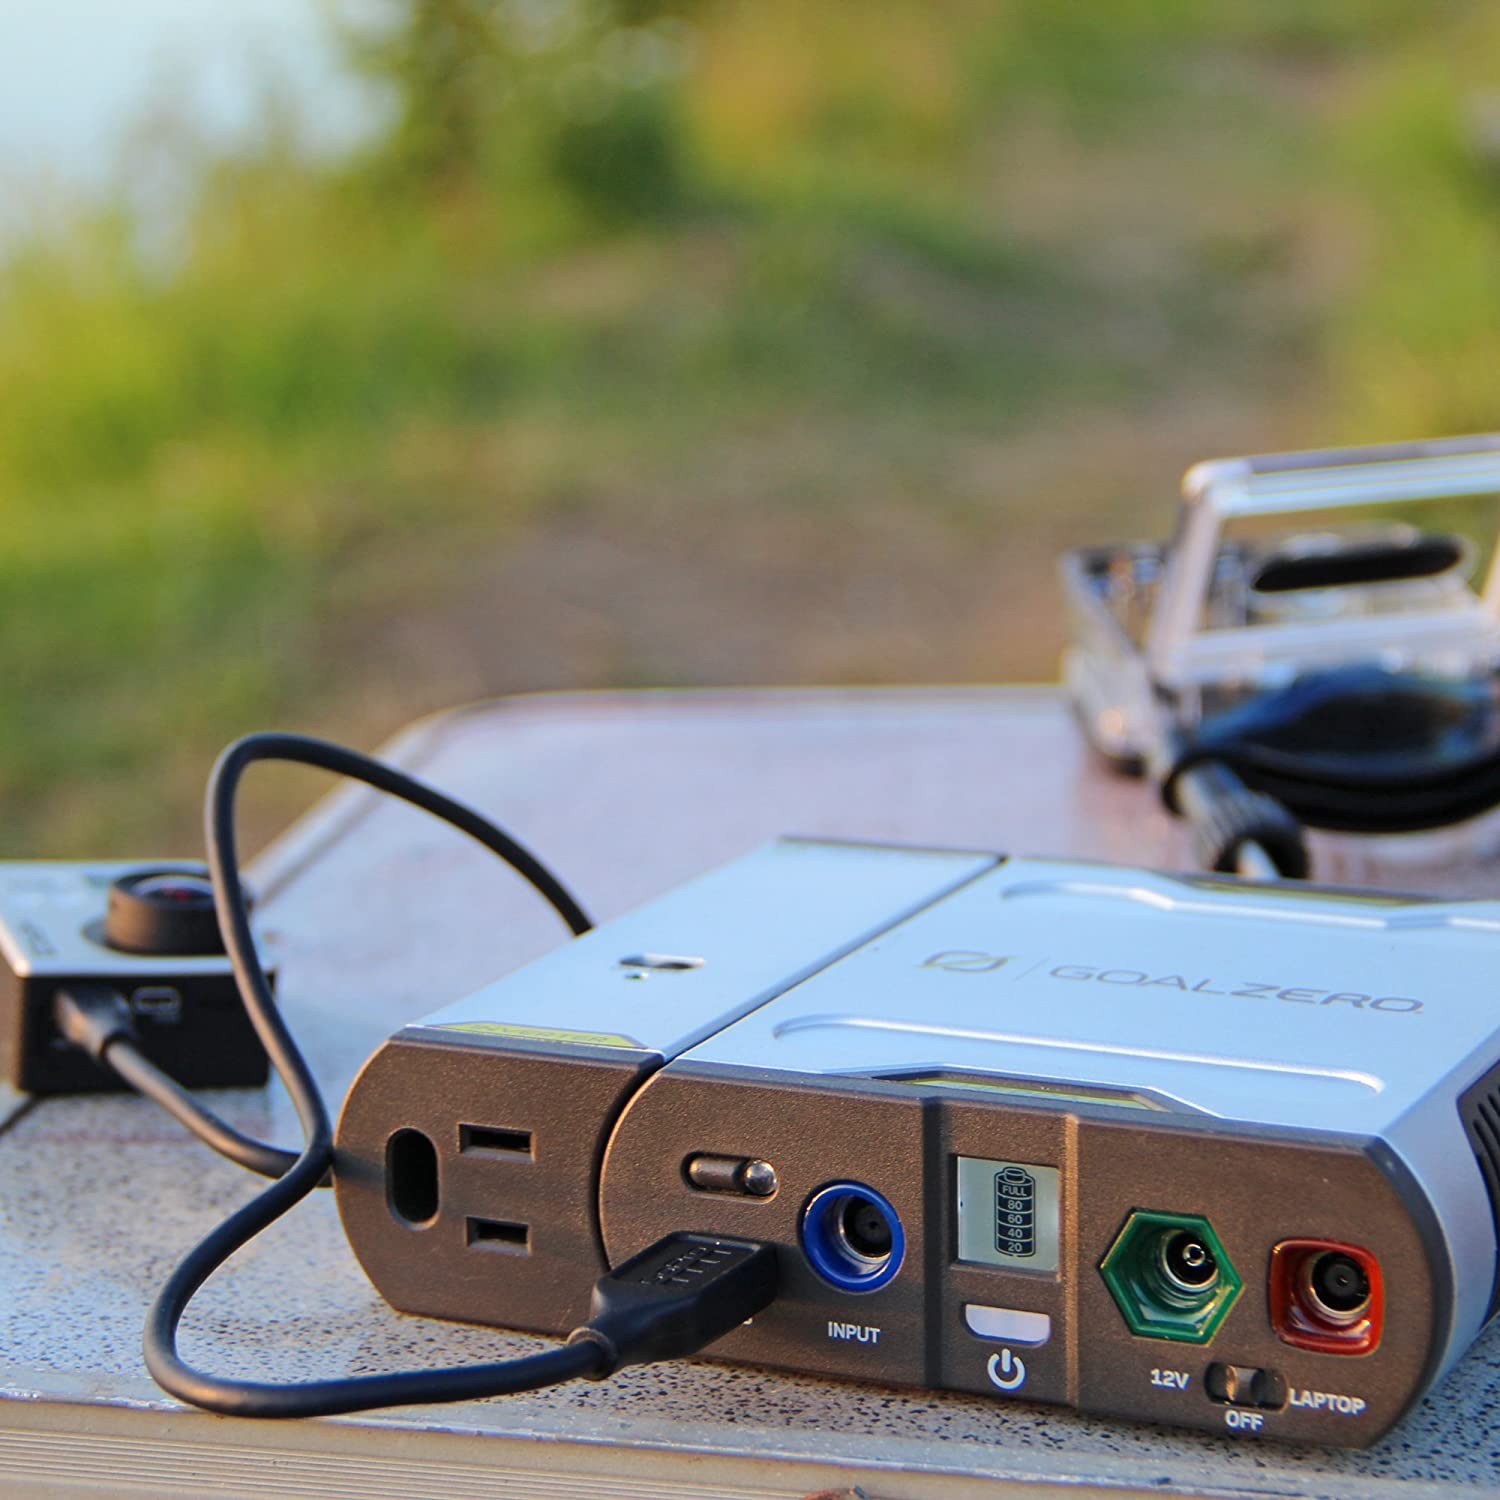 5200mAh//58Wh Goal Zero Sherpa 50 Power Pack with 110V AC Inverter